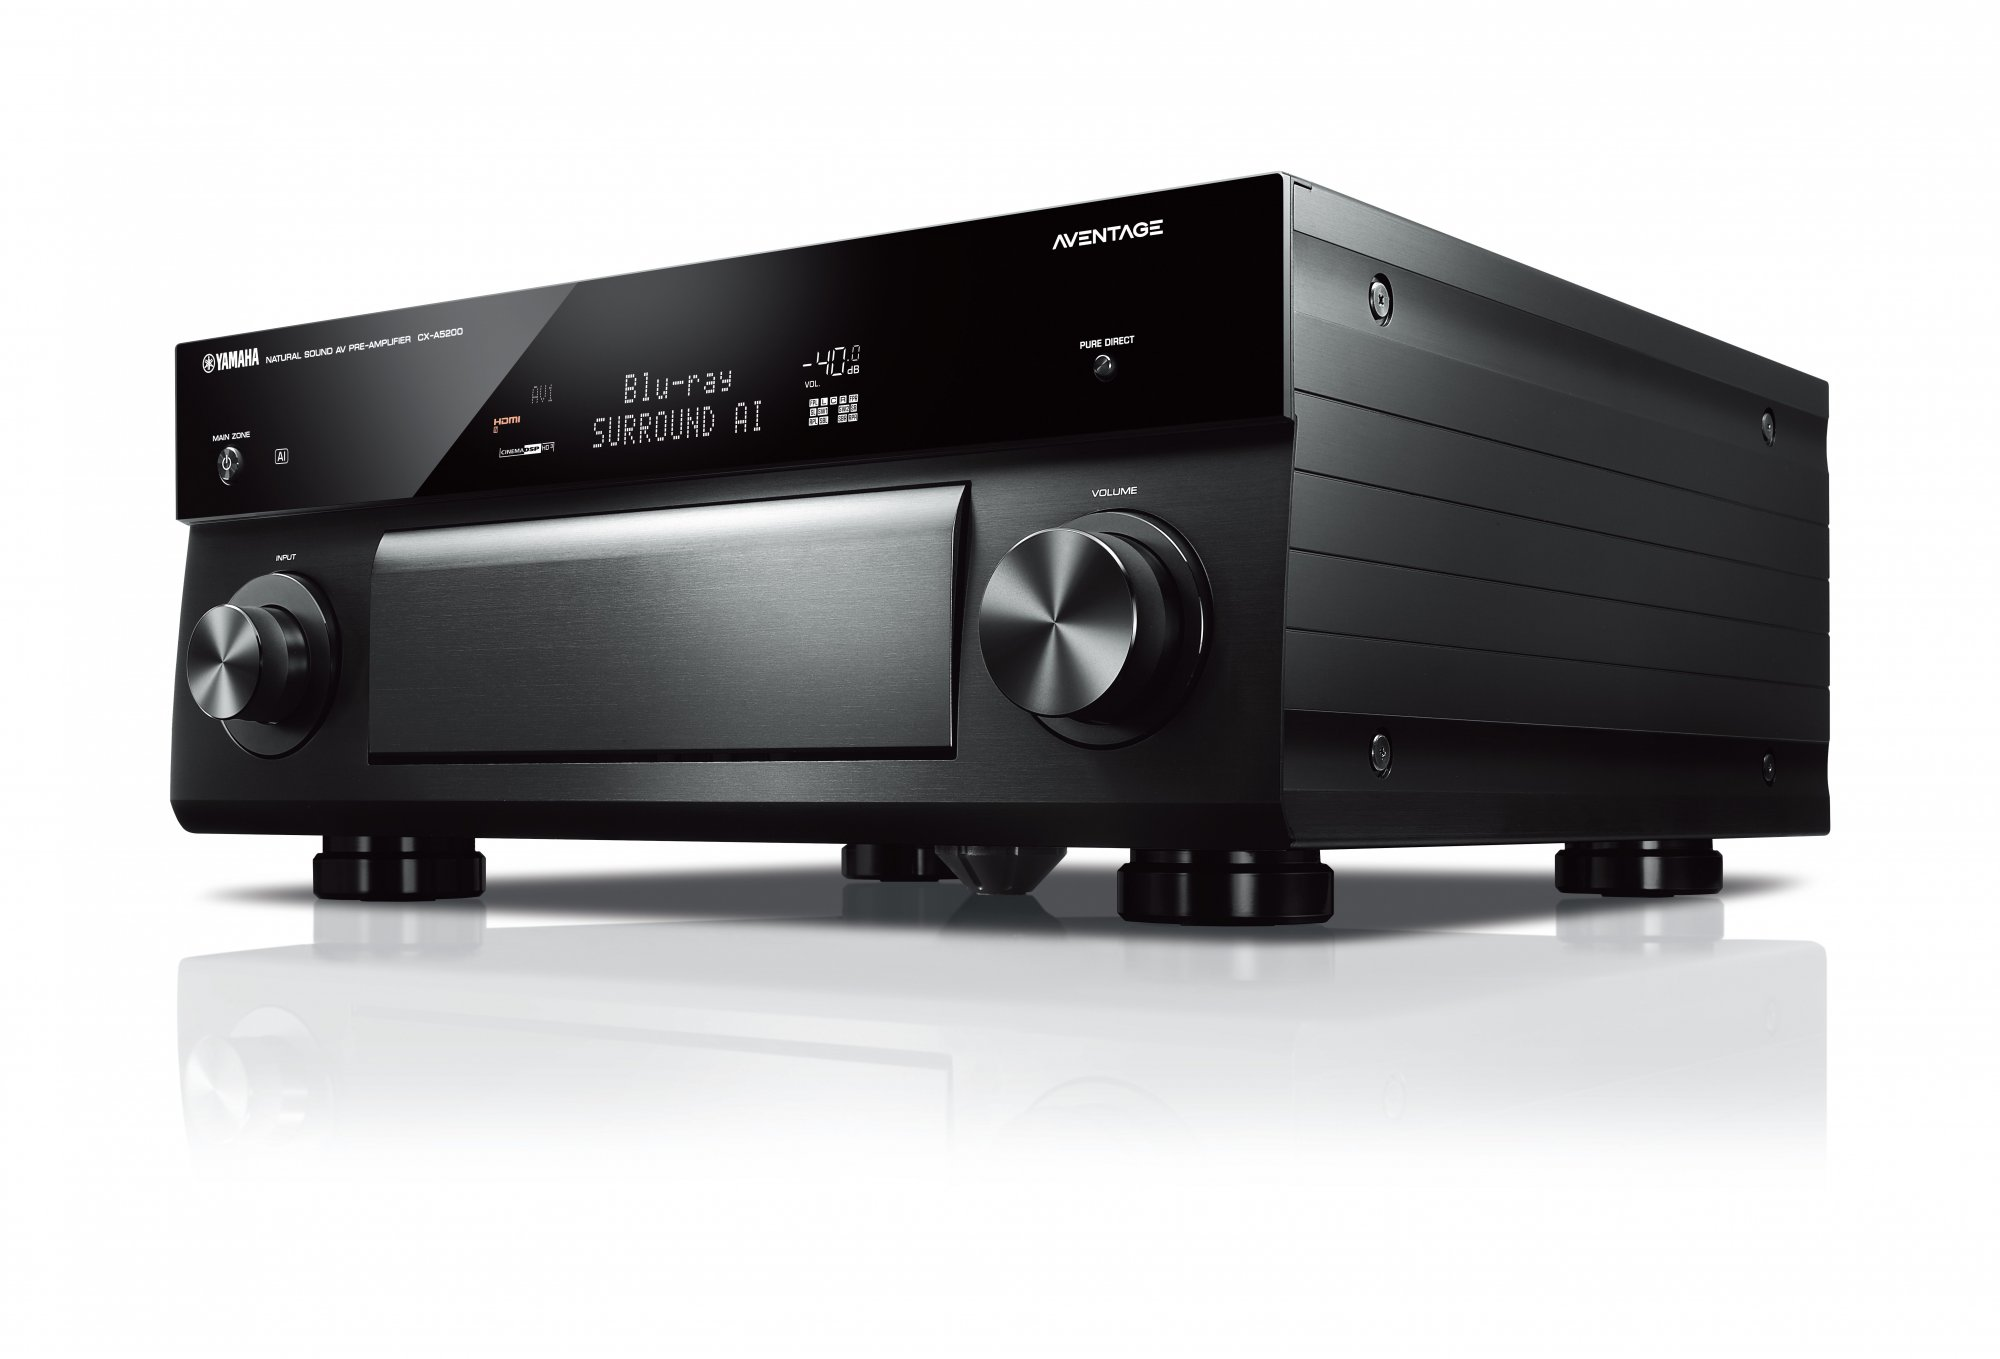 Yamaha CX-A5200 AVENTAGE 11.2-Channel AV Preamplifier with MusicCast